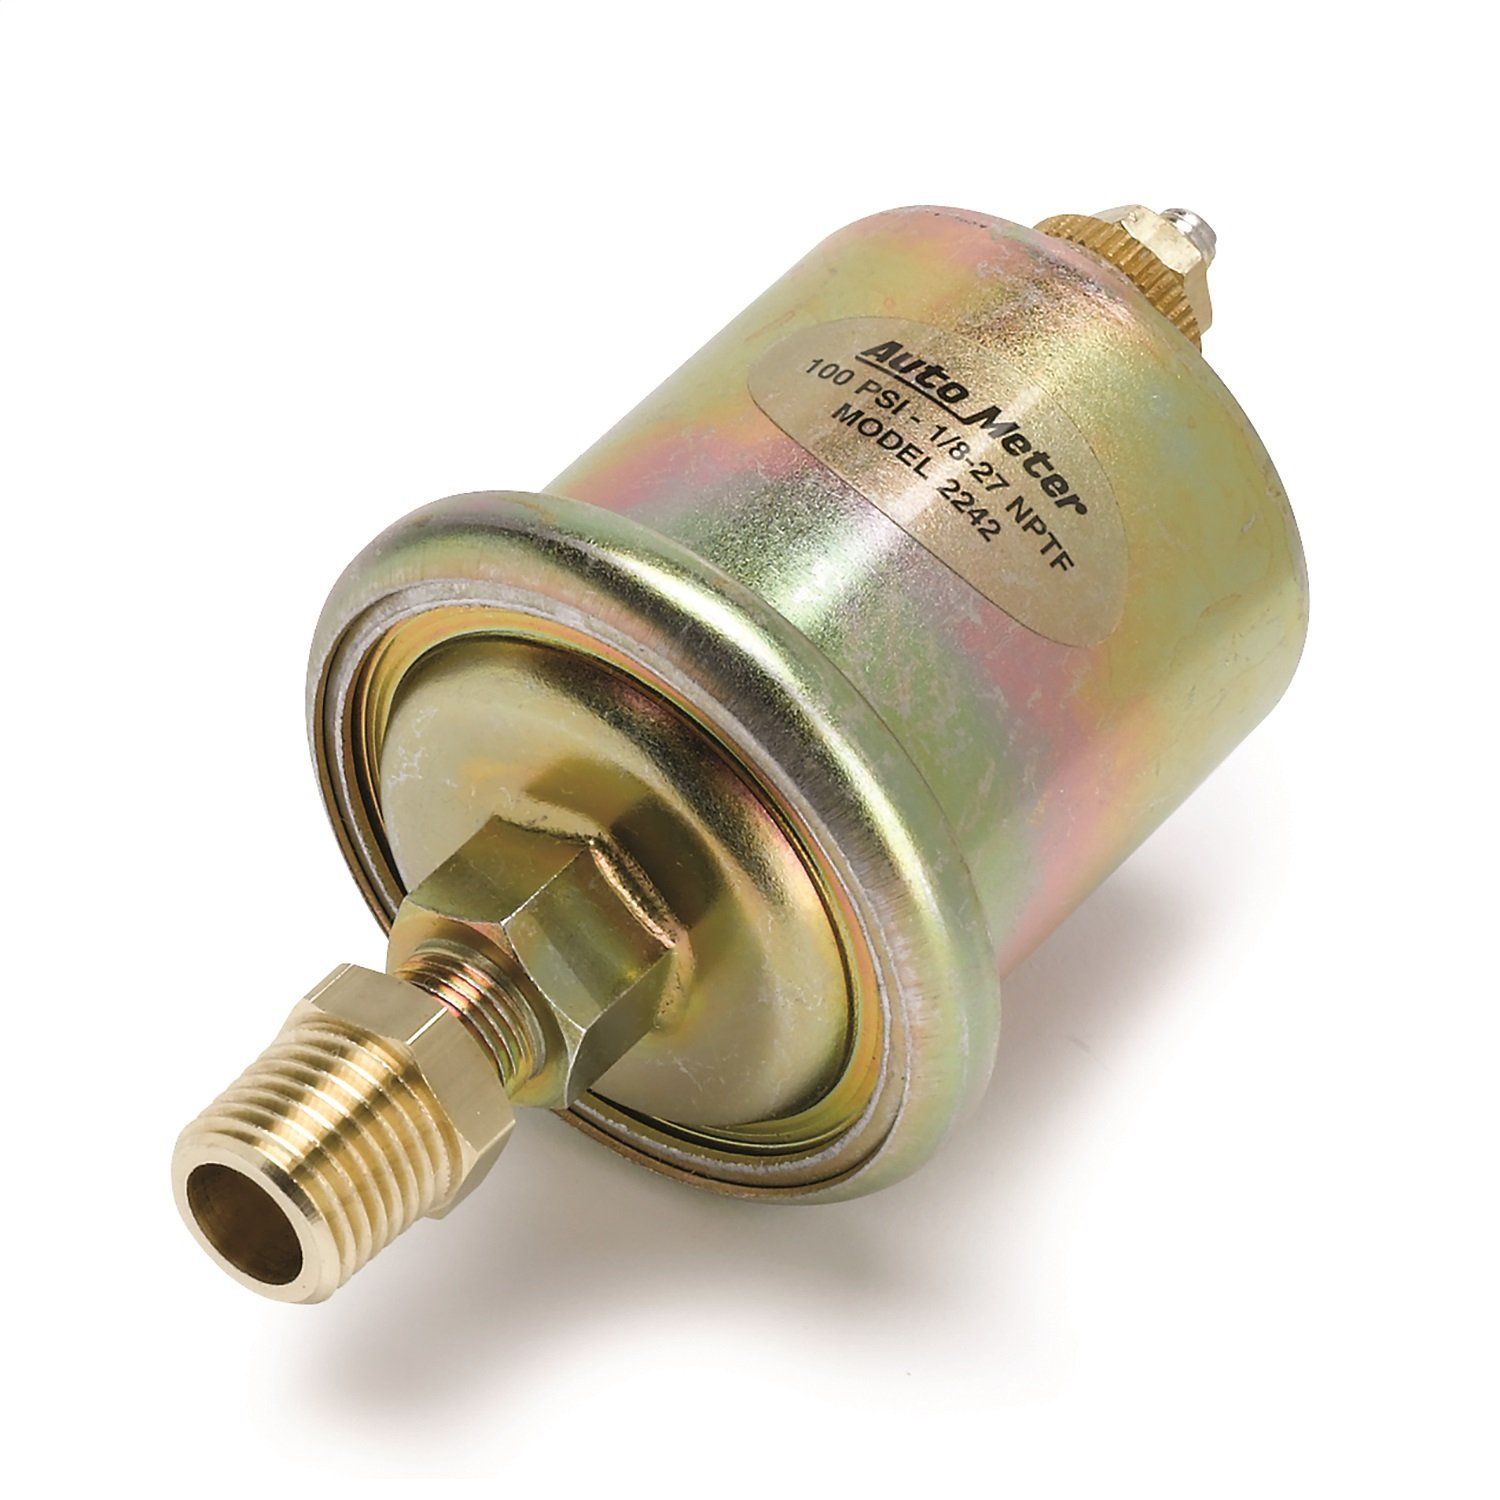 Auto Meter 2242 Electric Oil Pressure Sender